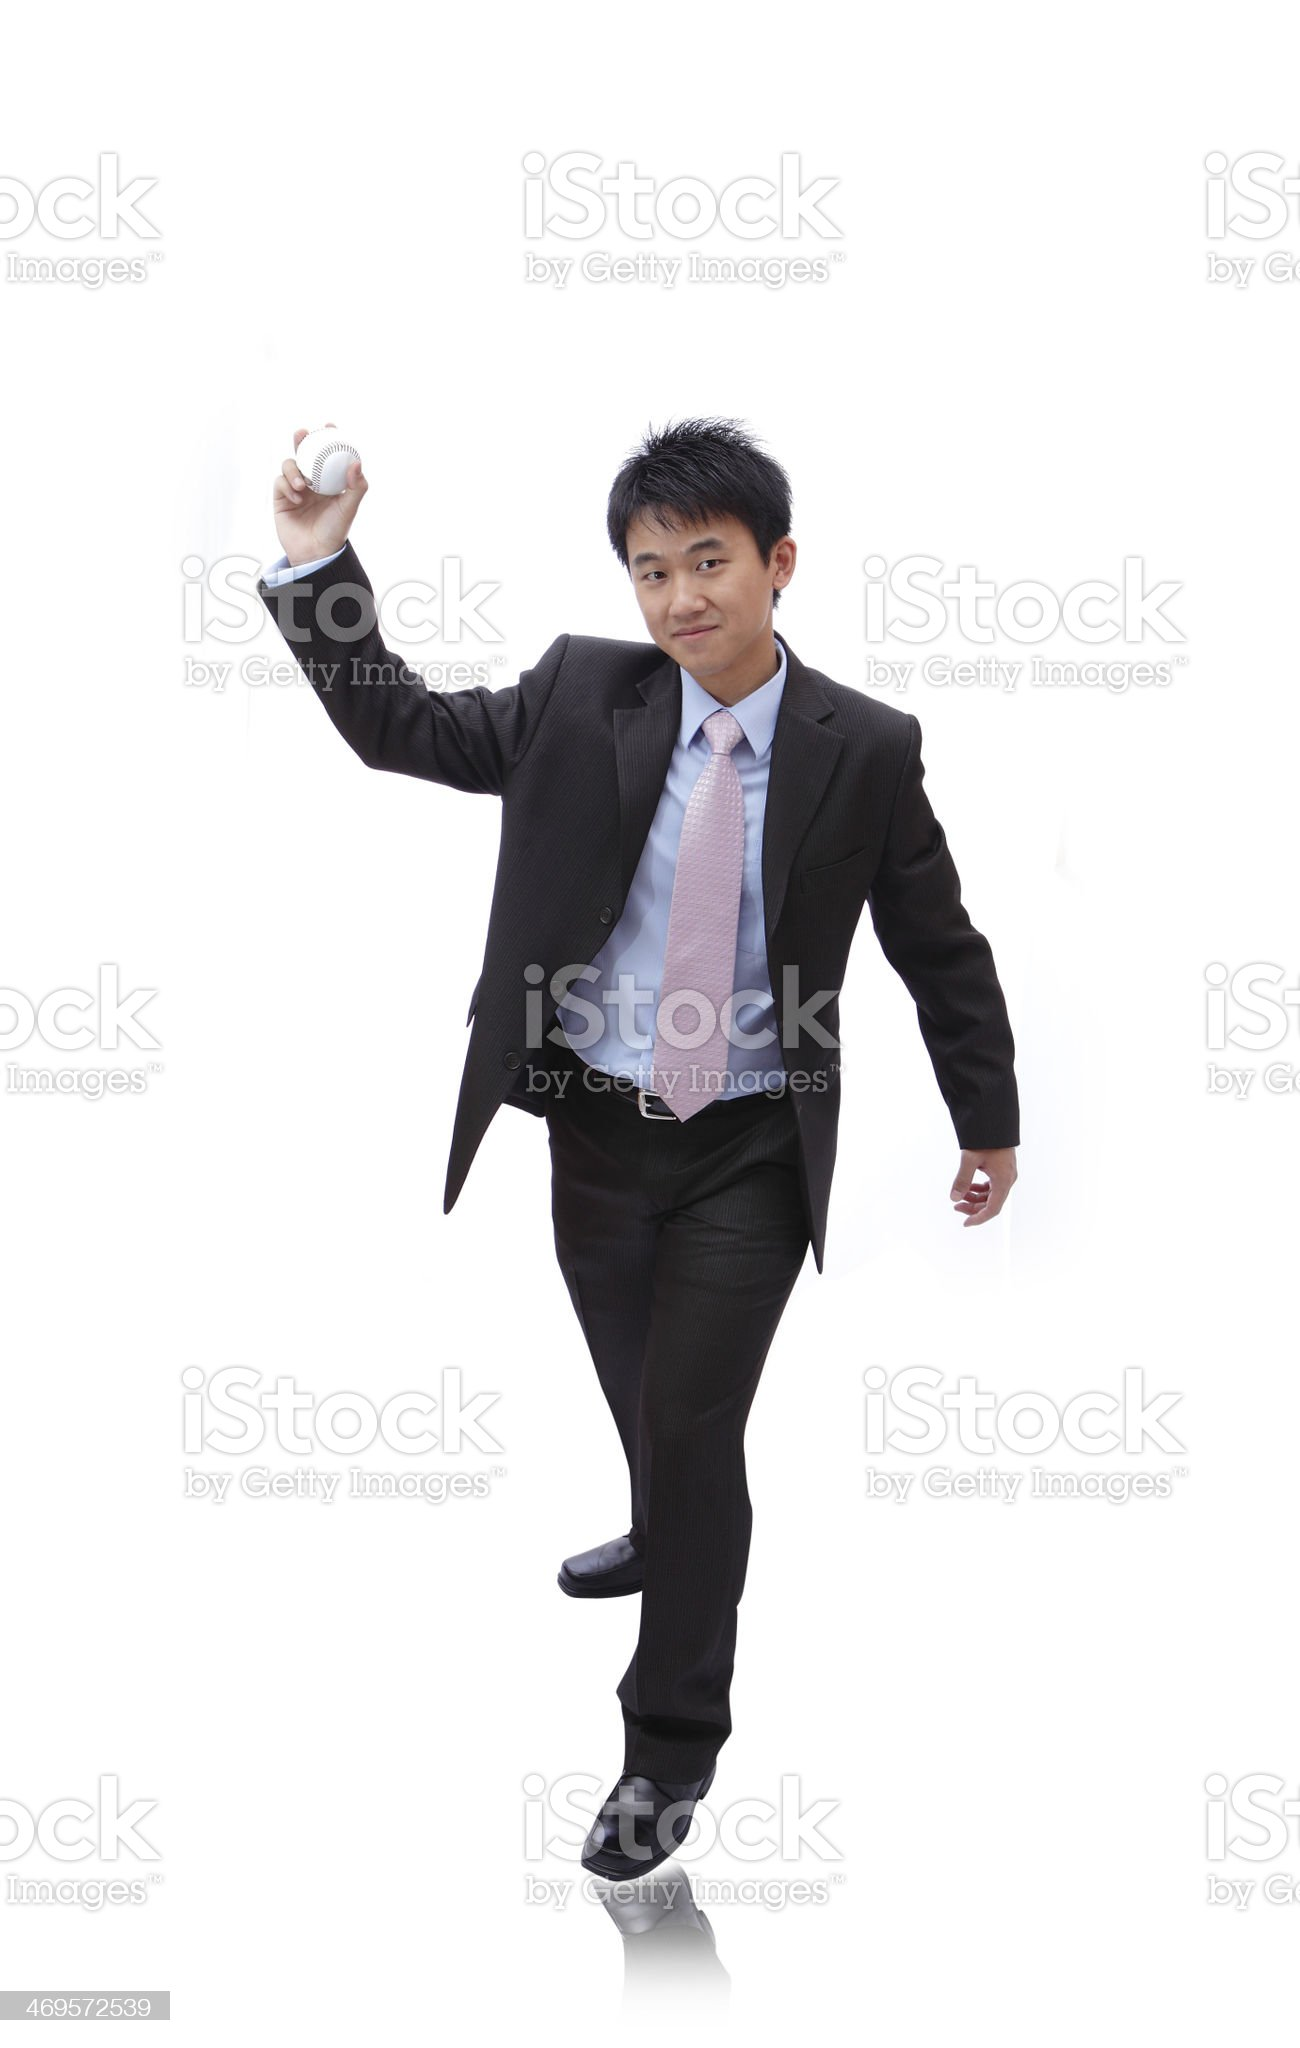 Young Business Man pitching baseball royalty-free stock photo